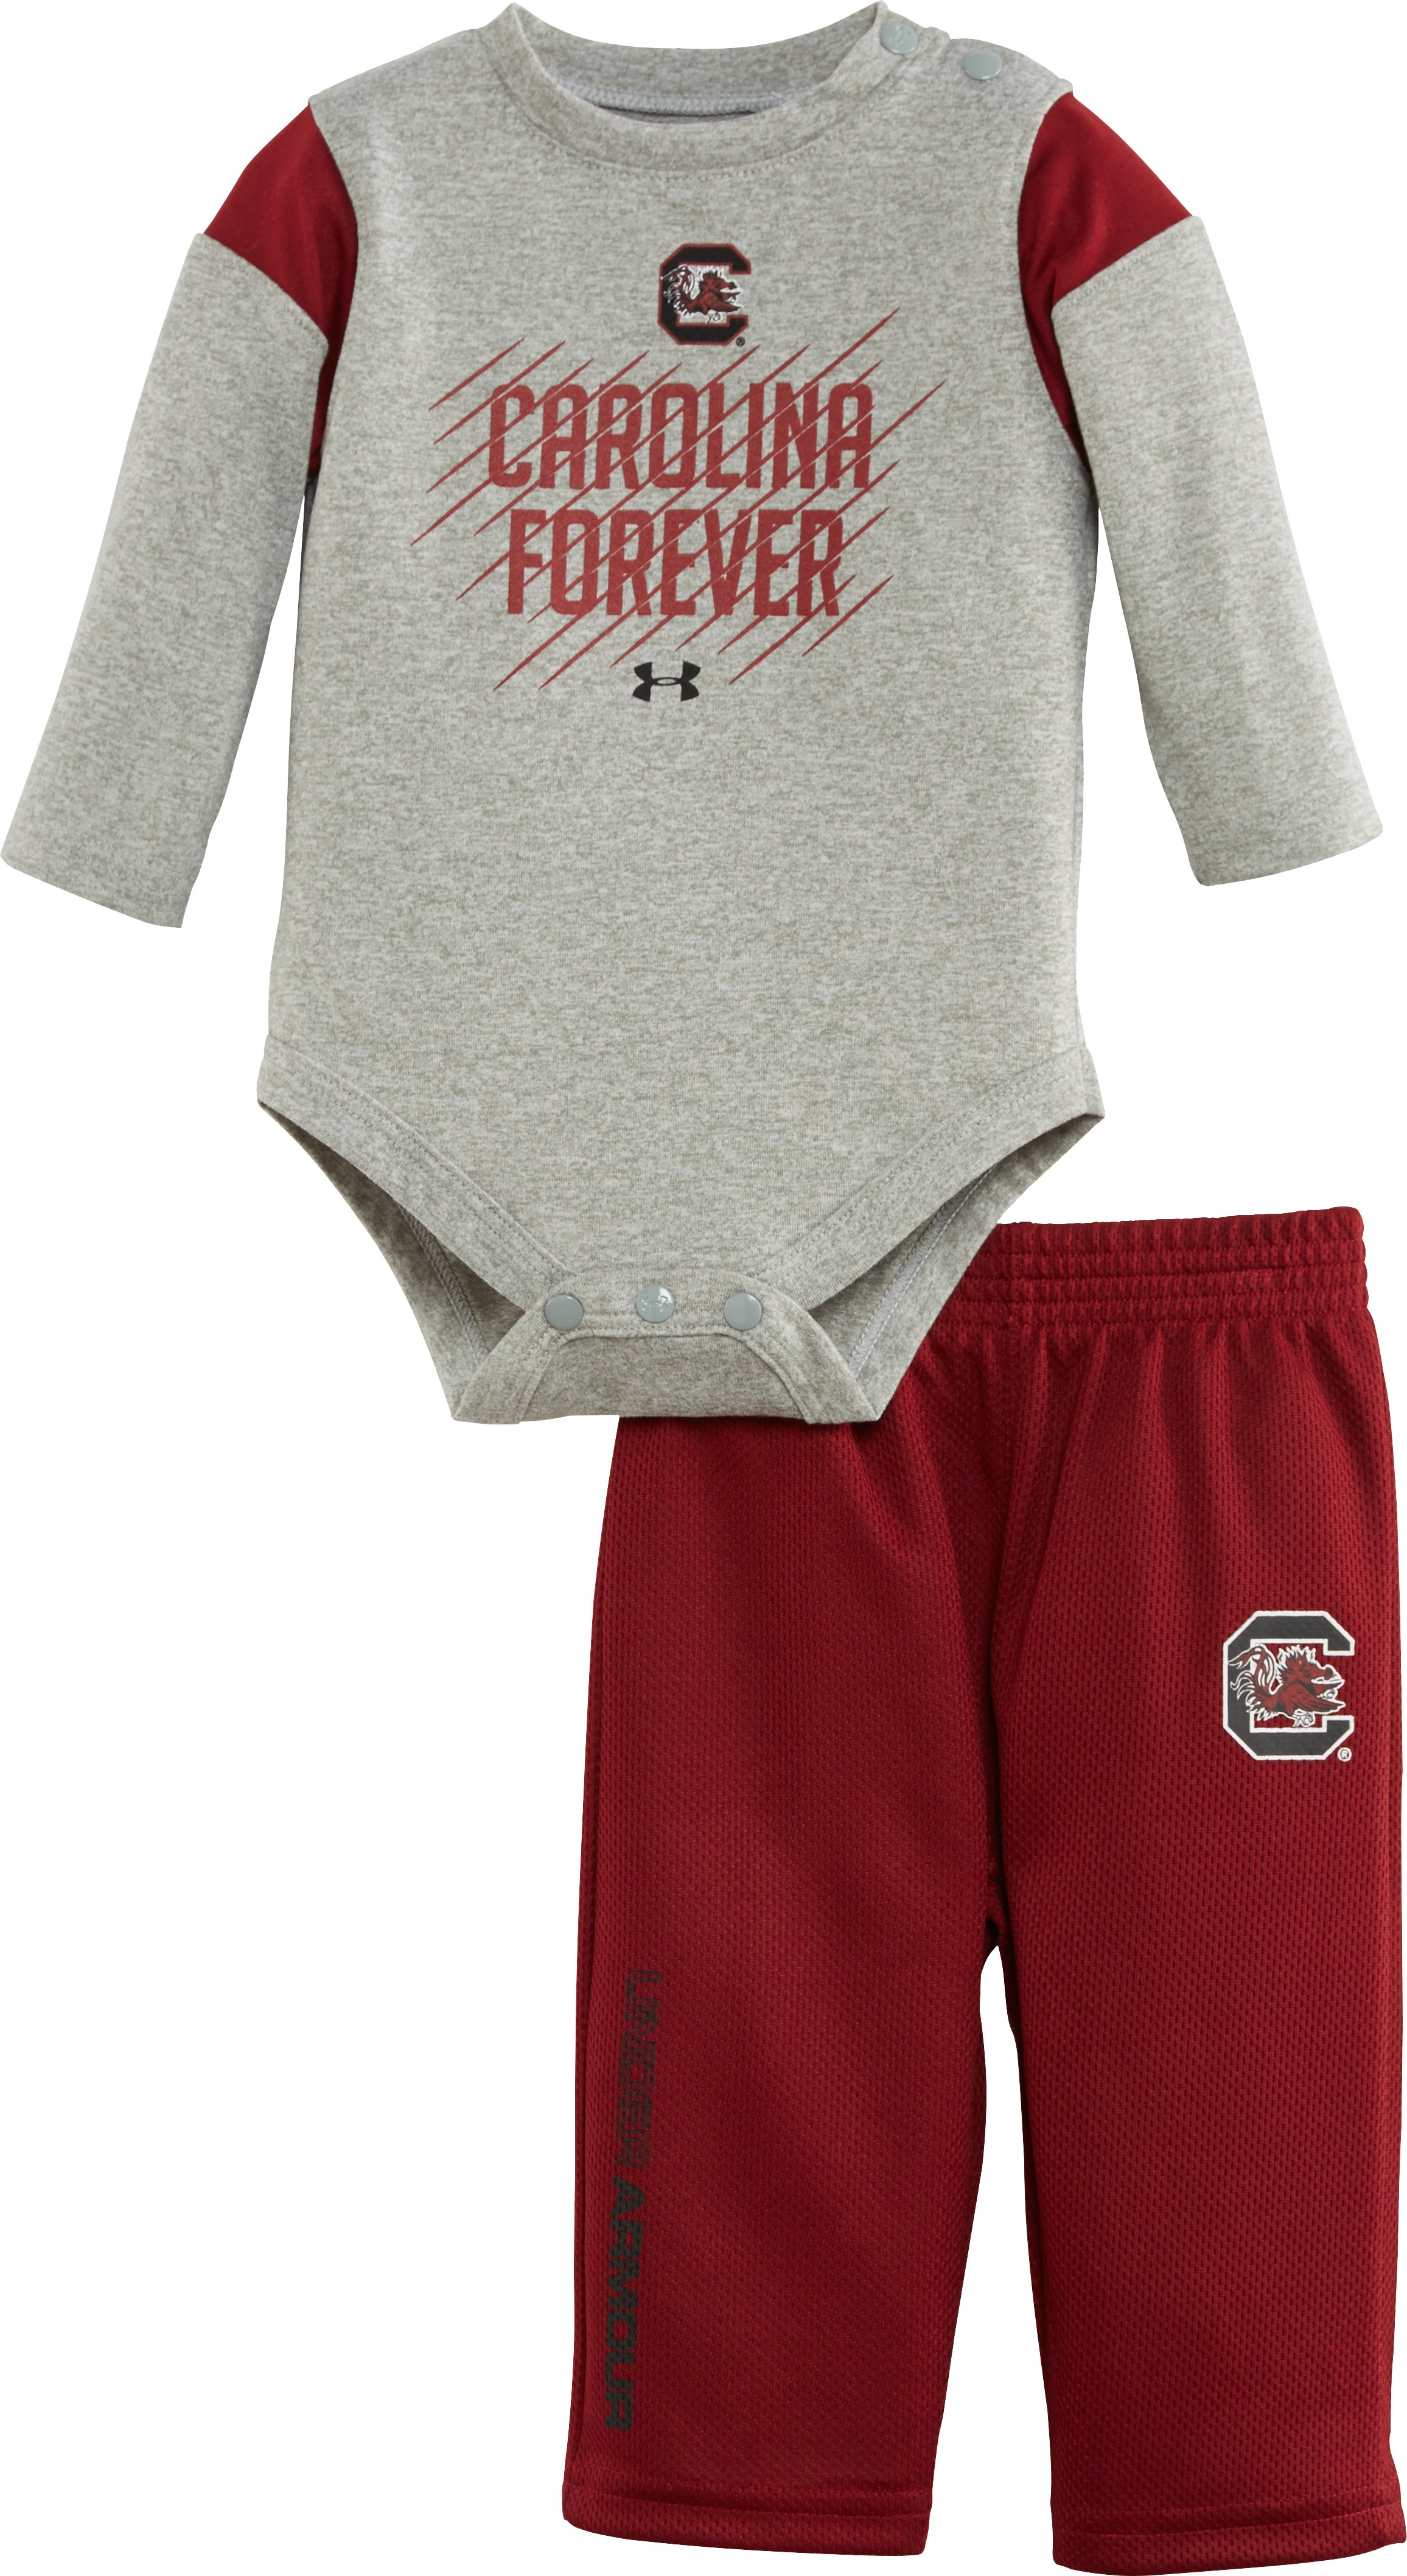 Boys' Newborn South Carolina Forever Bodysuit Pant Set, True Gray Heather, Laydown